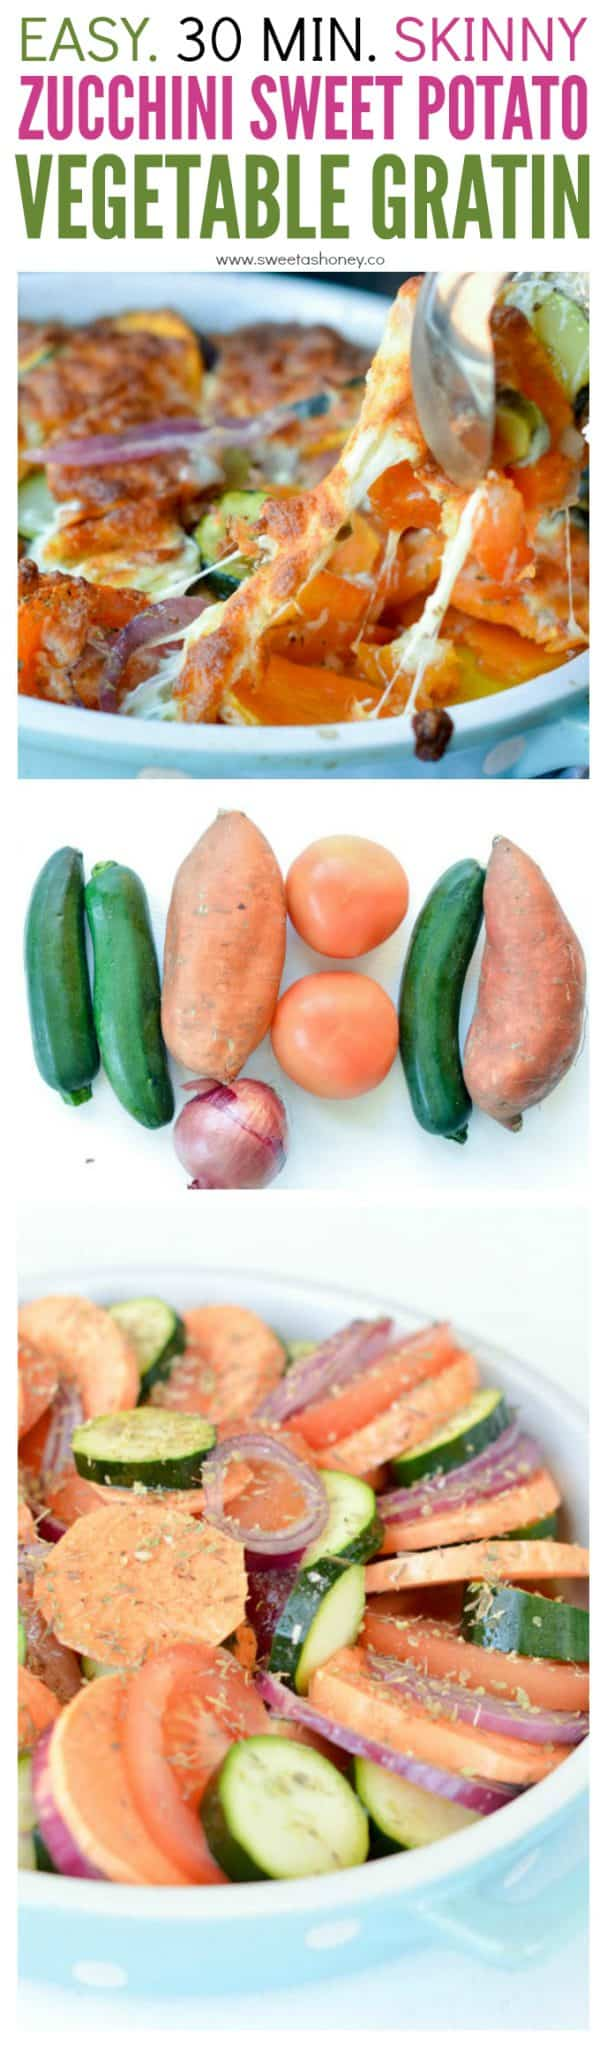 Healthy Zucchini Sweet Potato vegetable gratin recipe with mixed roasted vegetables and cheese.